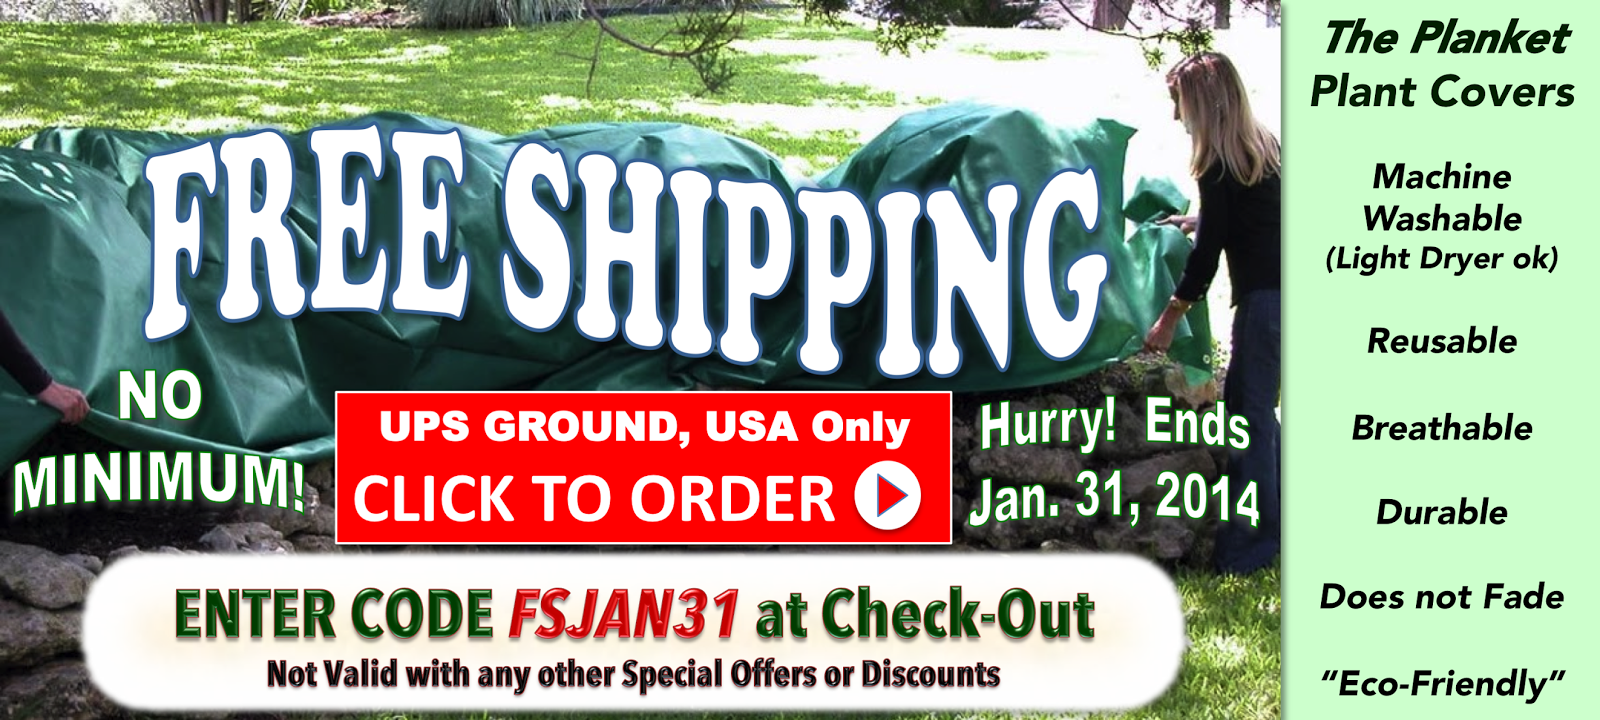 The Planket Frost Cover for Plants and Gardens - FREE SHIPPING